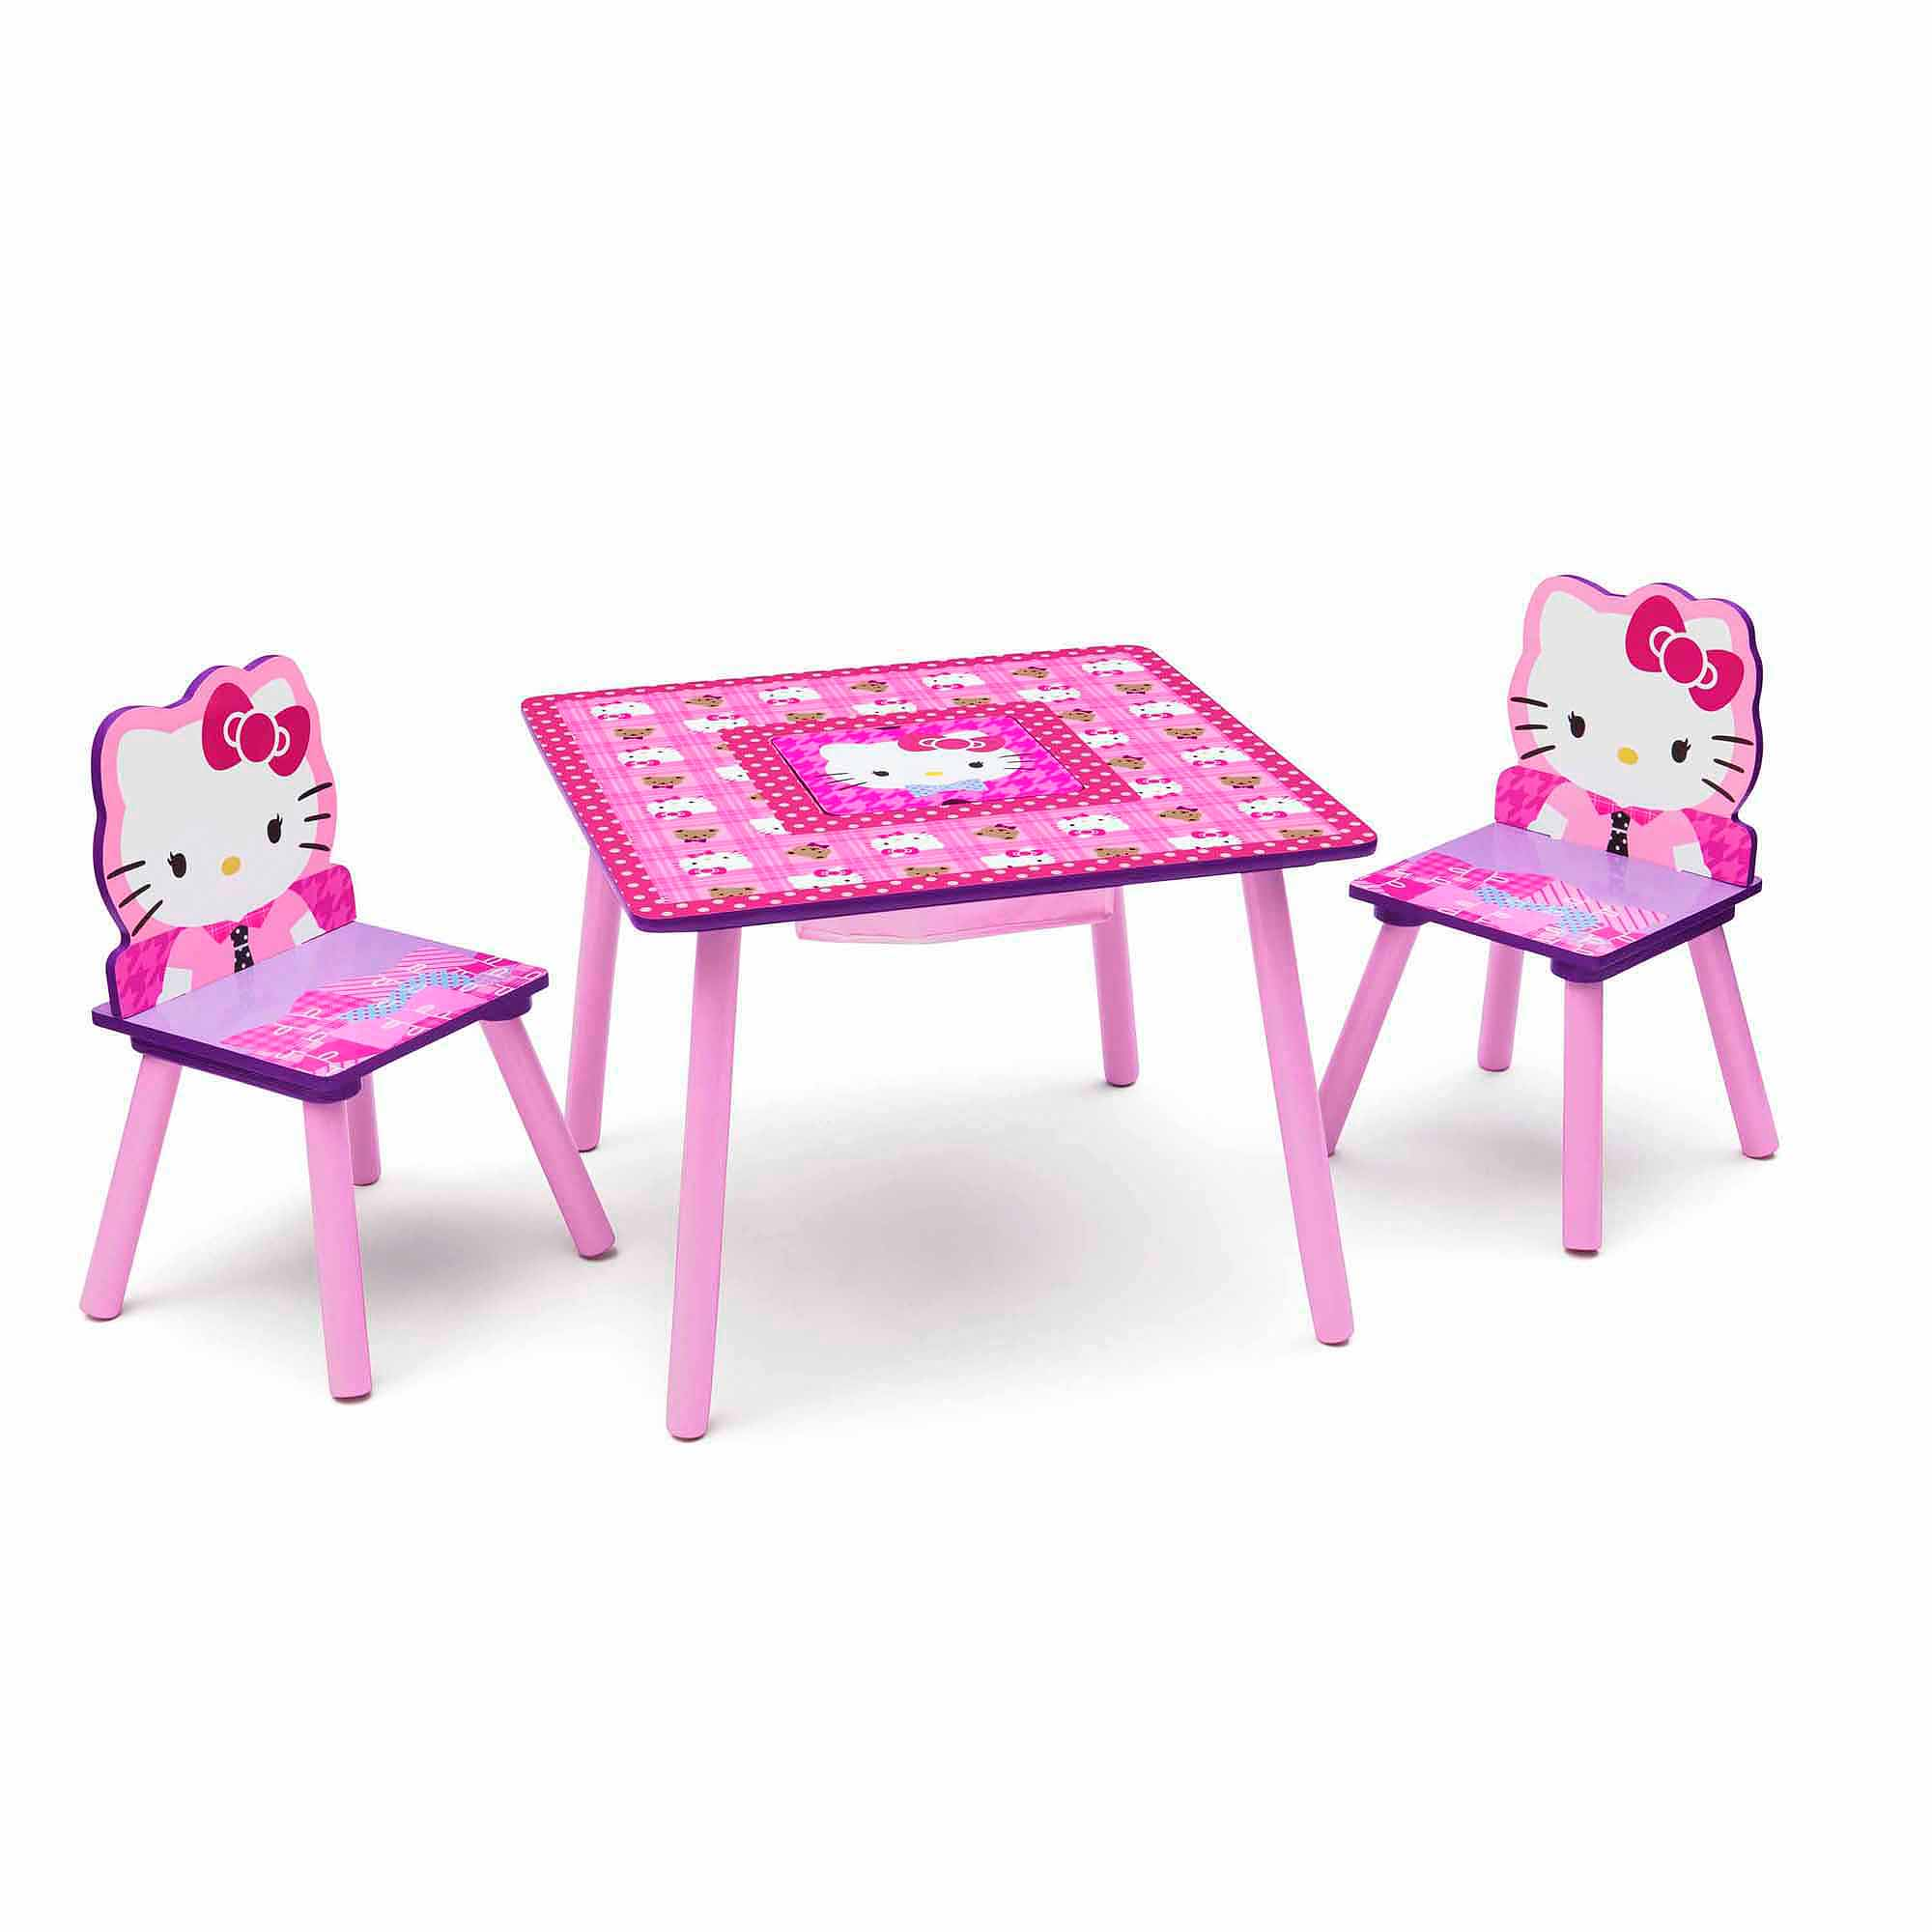 hello kitty chairs puppy dog pals chair furniture set home decor